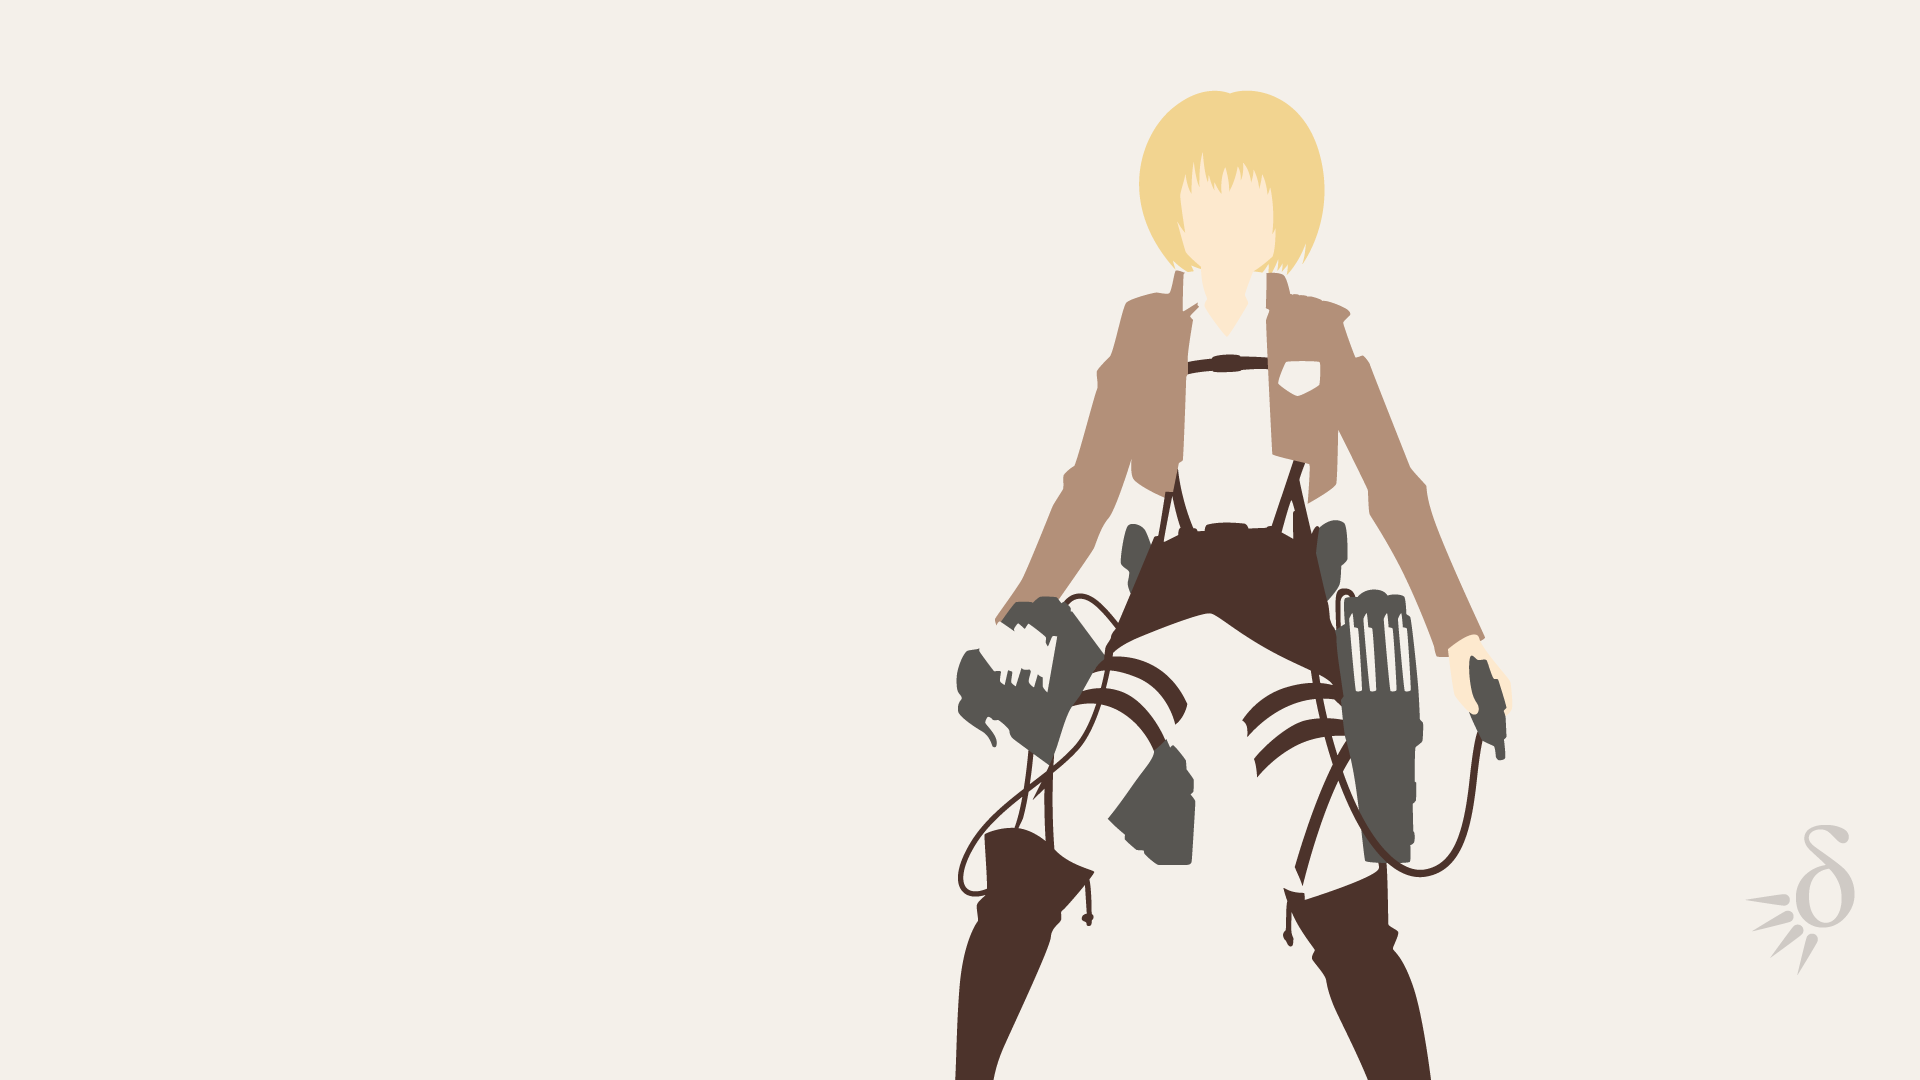 Old Wallpaper Iphone X Attack On Titan Wallpapers Pictures Images